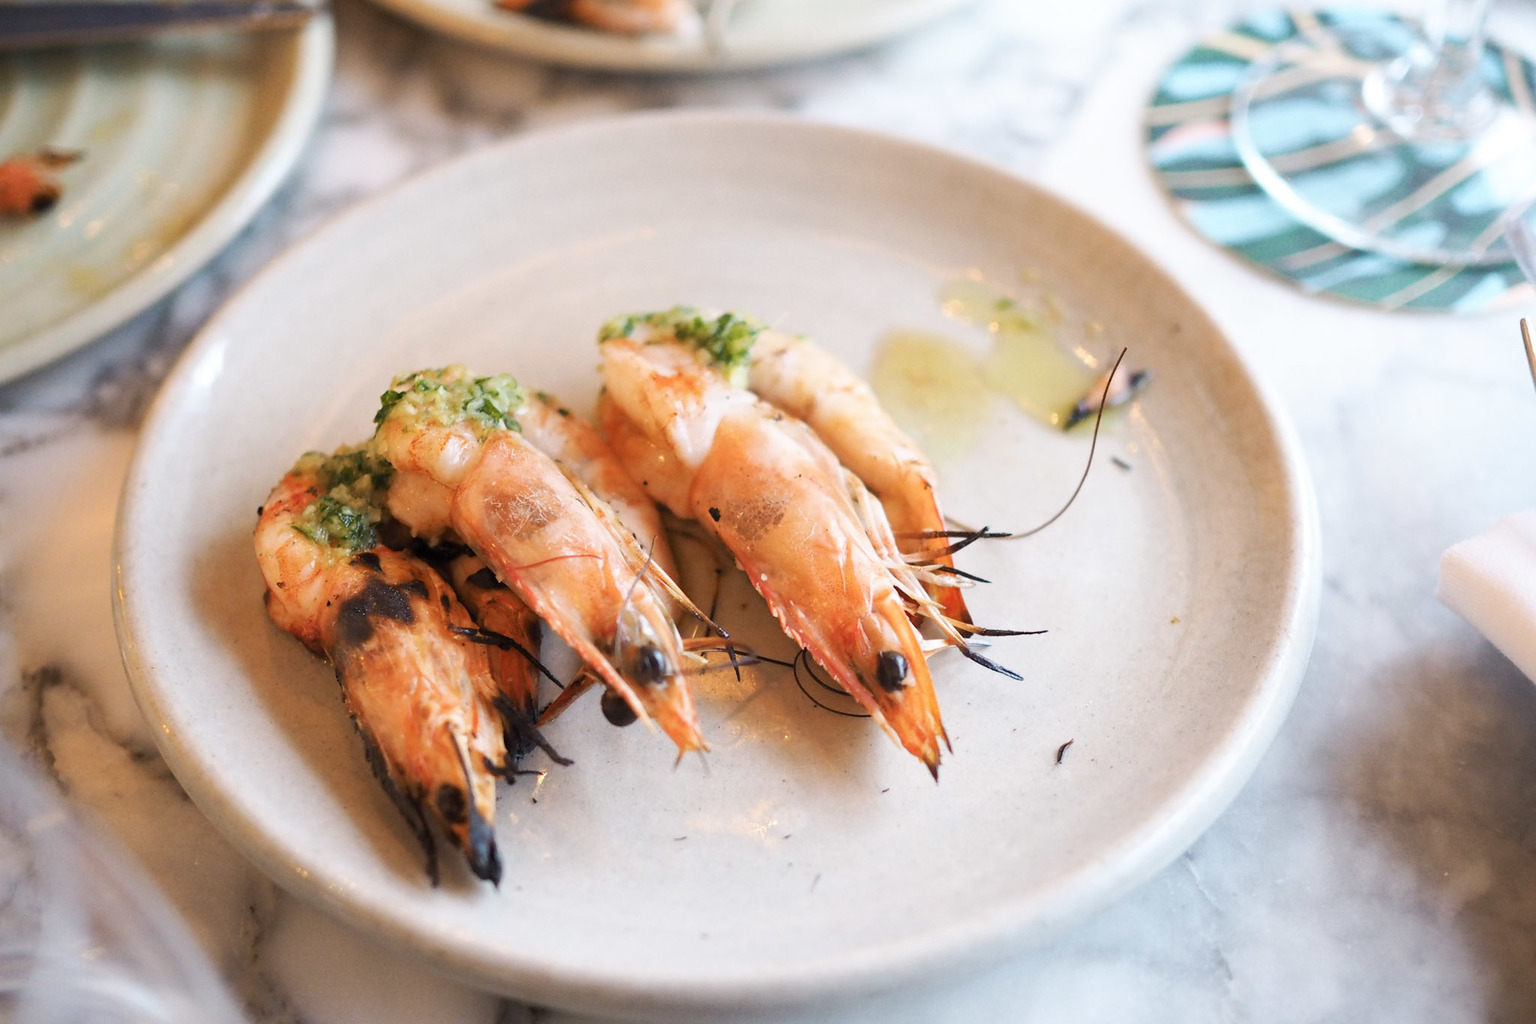 STYLE LOBSTER DINES AT GIN TONICA, THE DISTILLERY